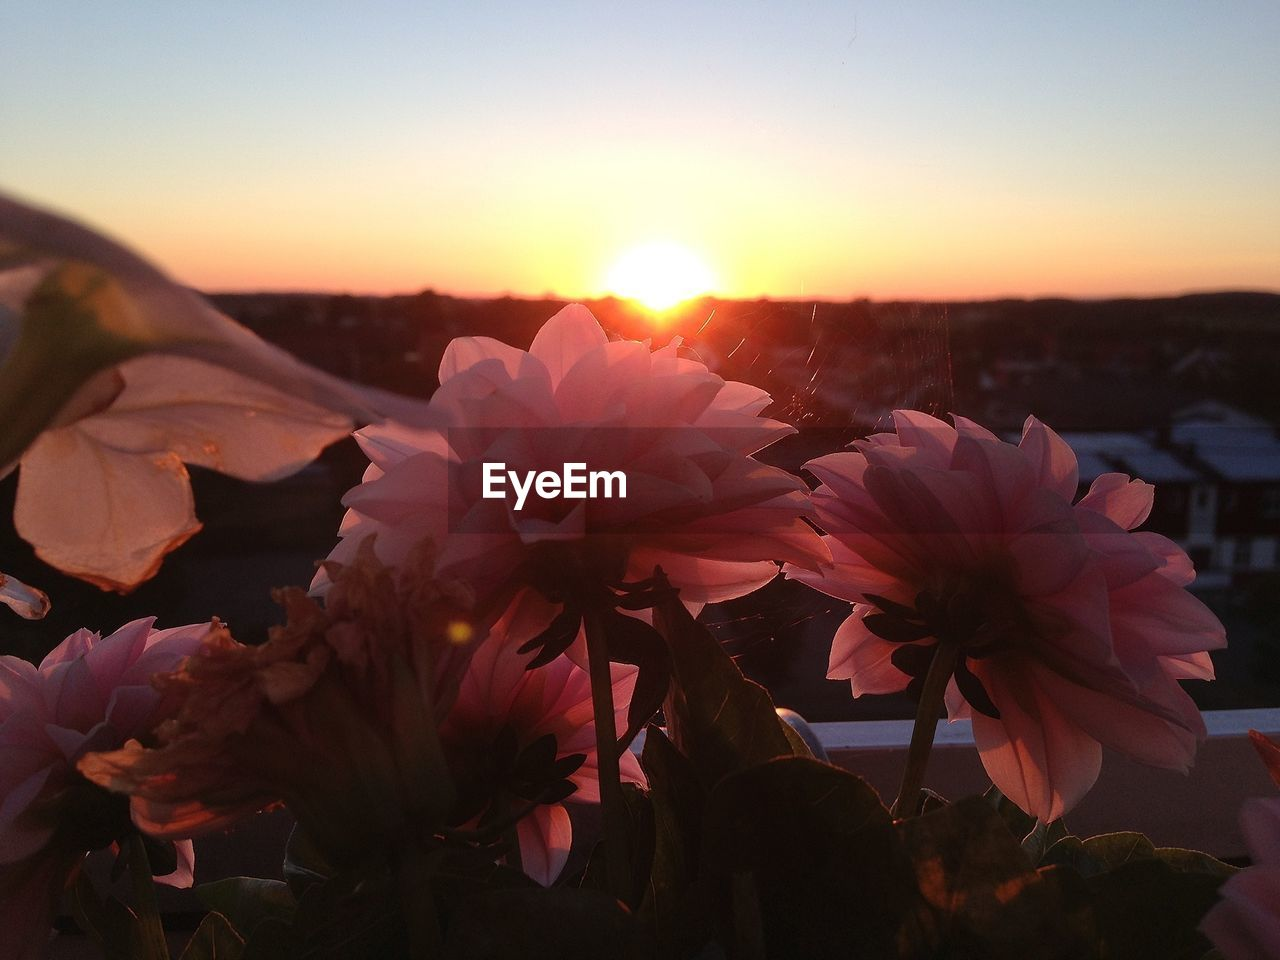 flower, nature, sunset, beauty in nature, sun, bright, growth, sunlight, tranquility, petal, no people, plant, outdoors, fragility, freshness, sky, close-up, blooming, flower head, day